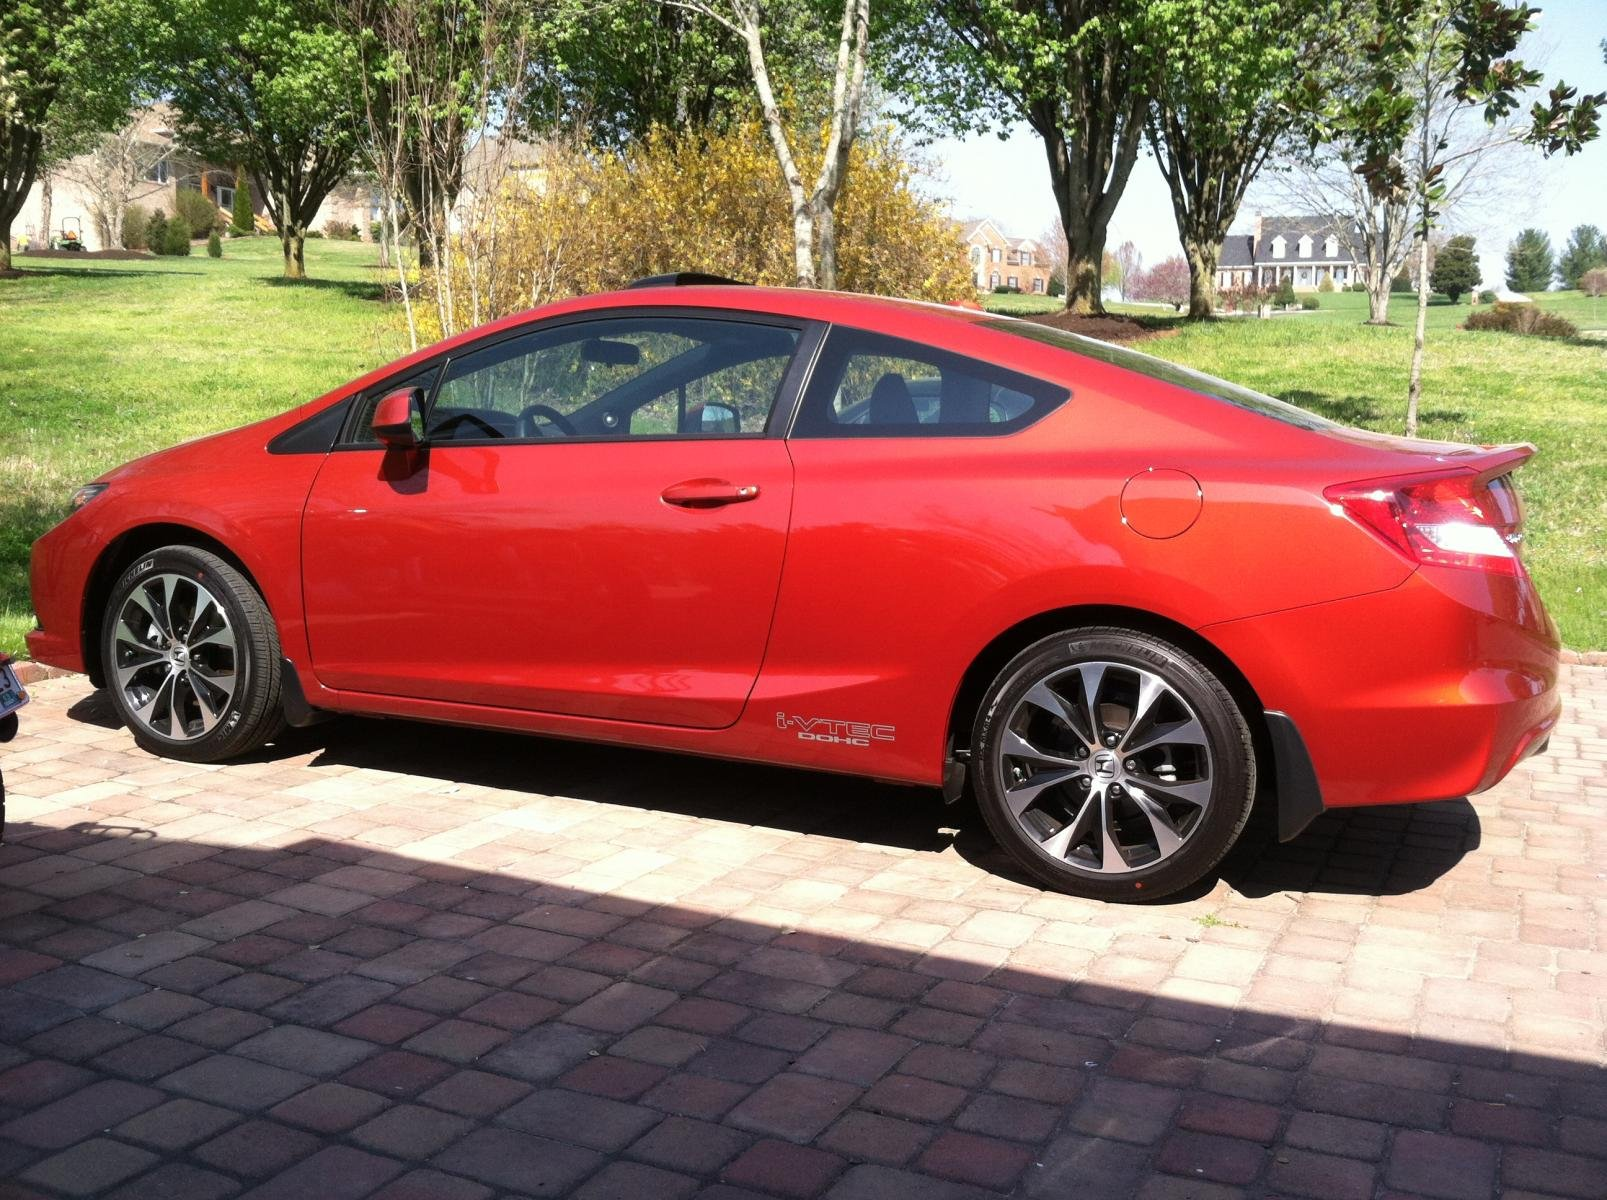 New to the Site and got a 2013 Honda Civic Si Coupe ...